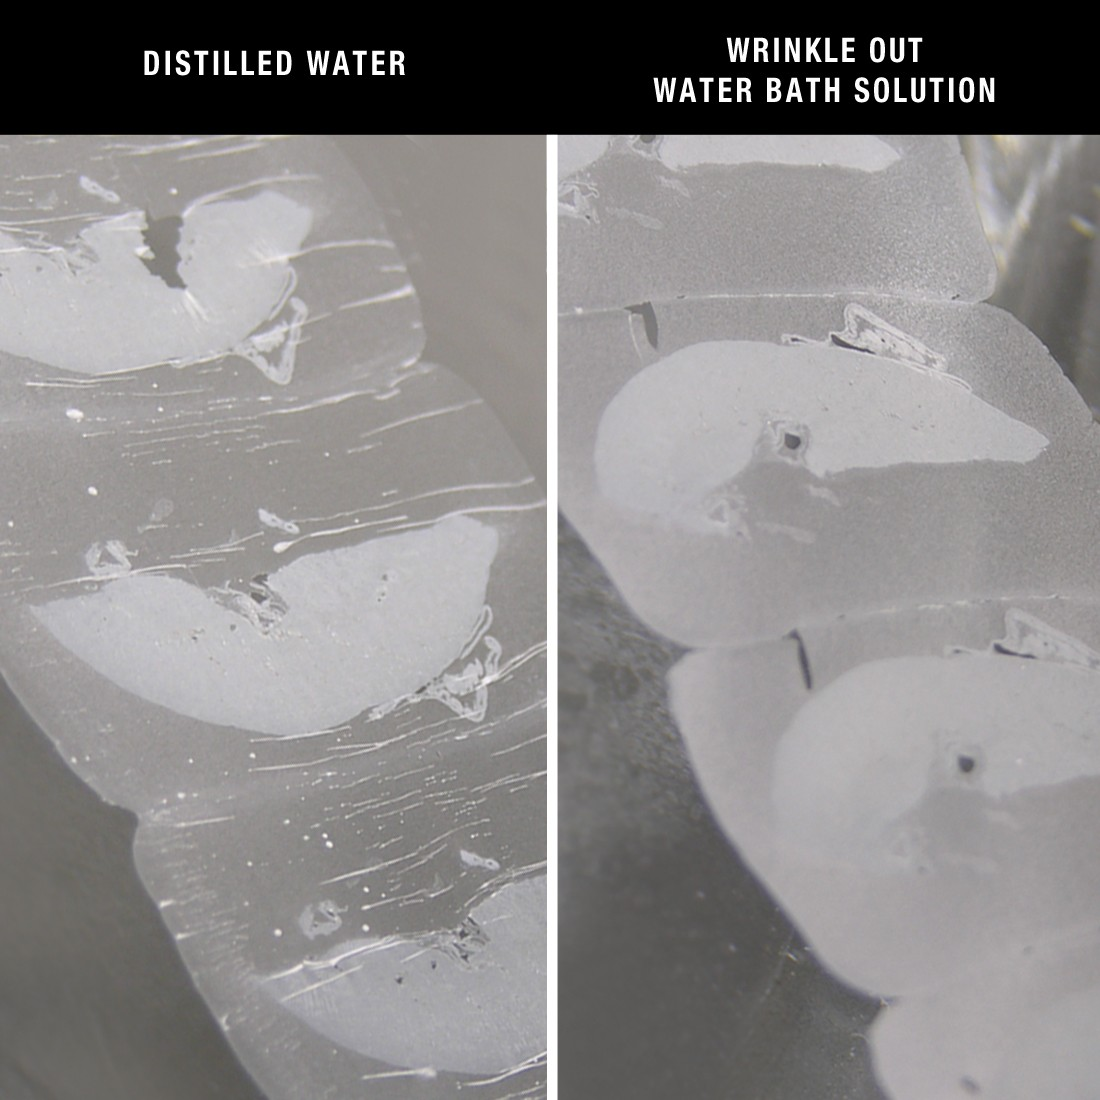 Wrinkle Out Water Bath Solution | Polysciences, Inc.